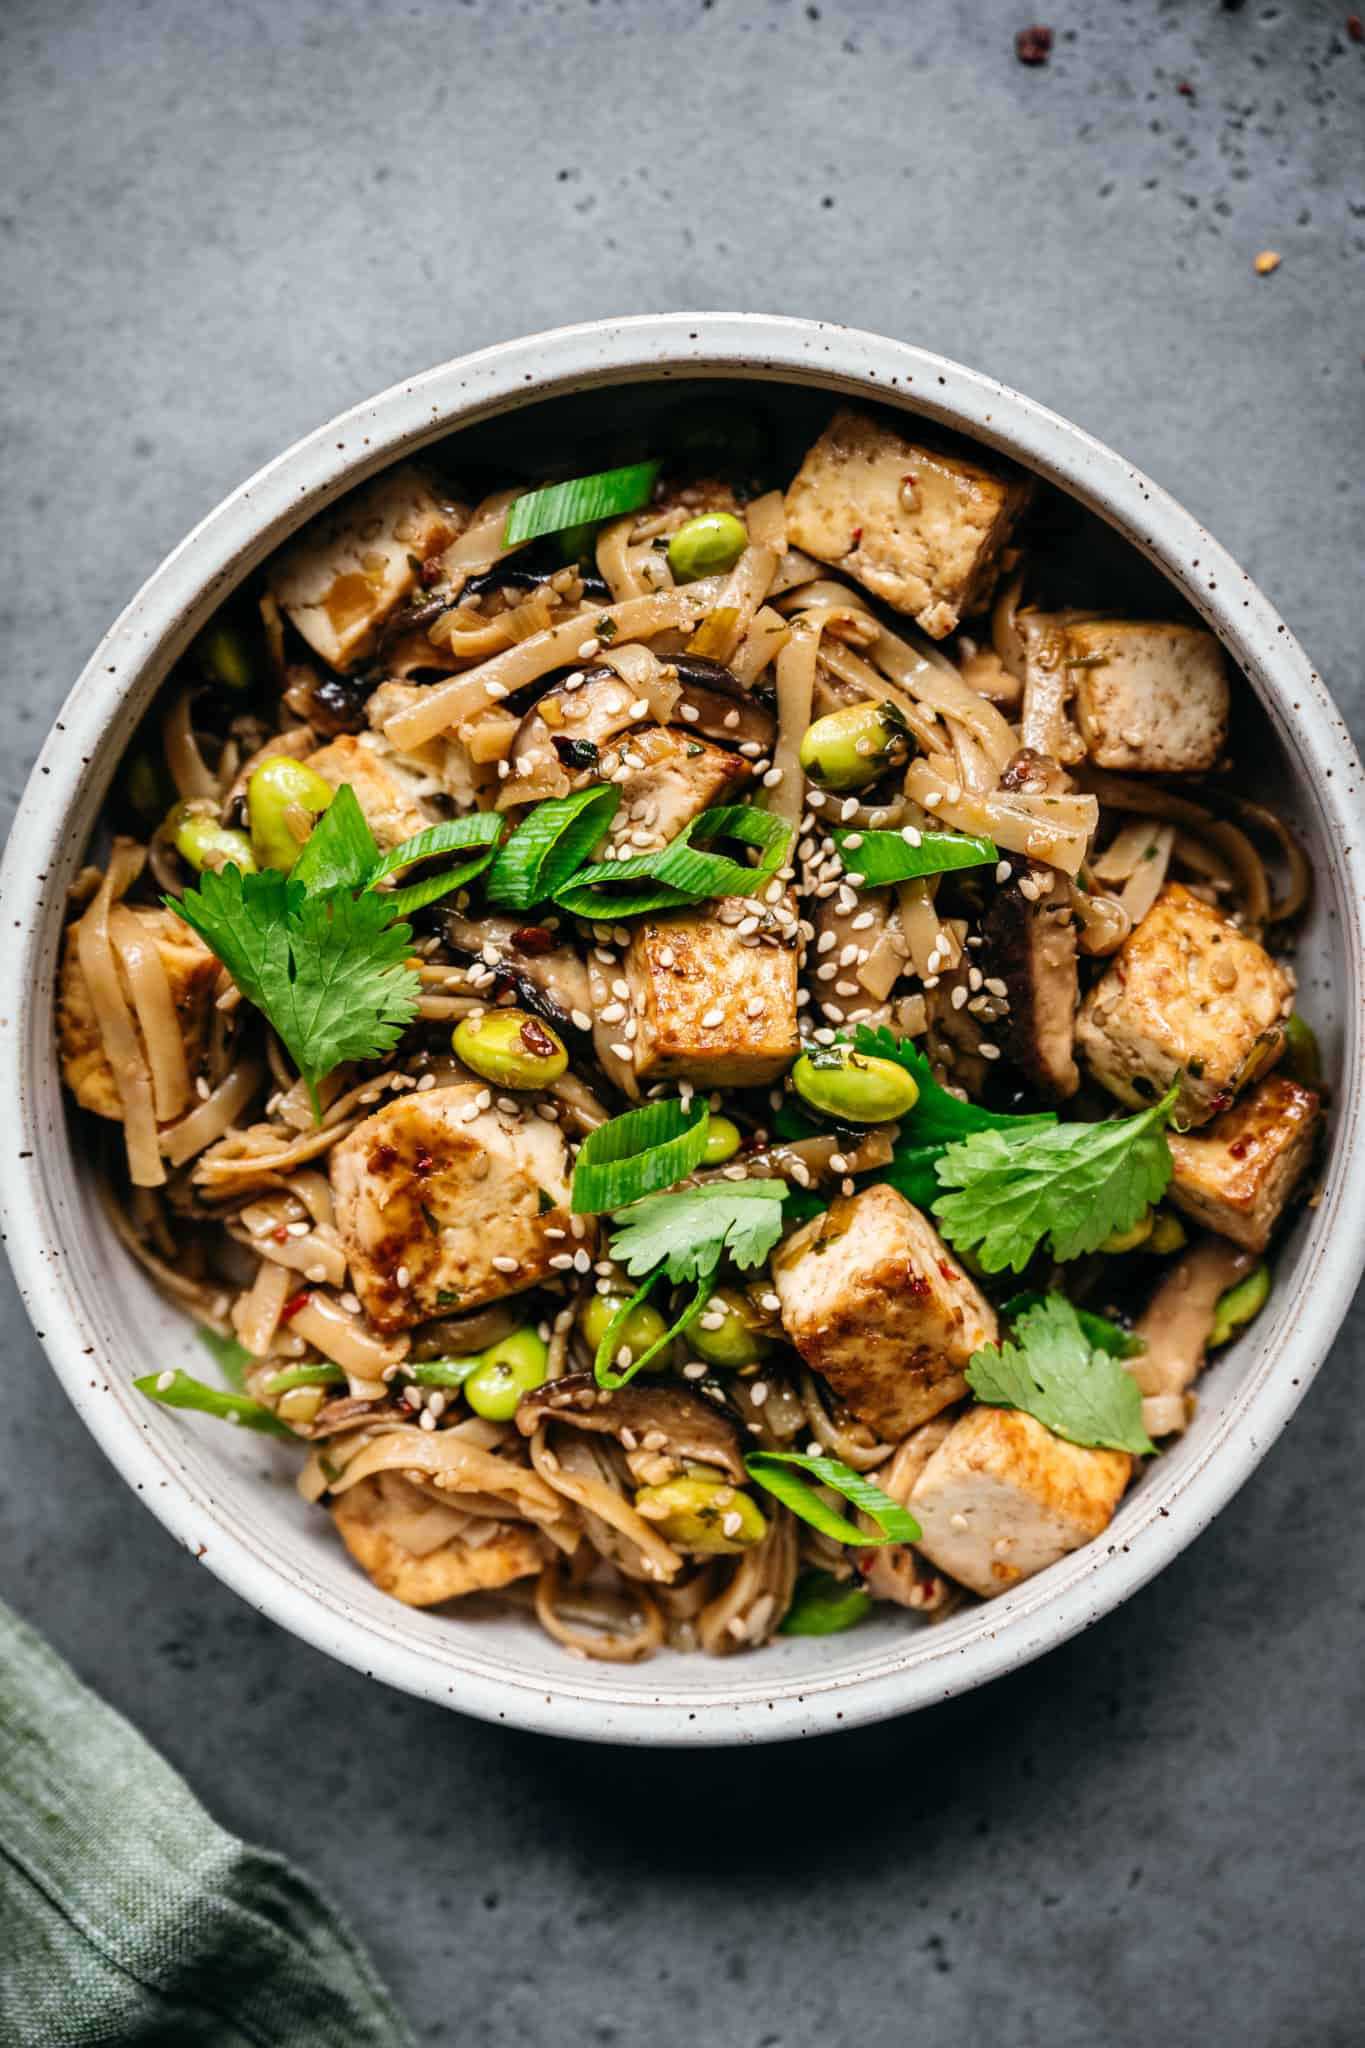 close up view of vegan rice noodles with crispy tofu, mushrooms and edamame in white bowl